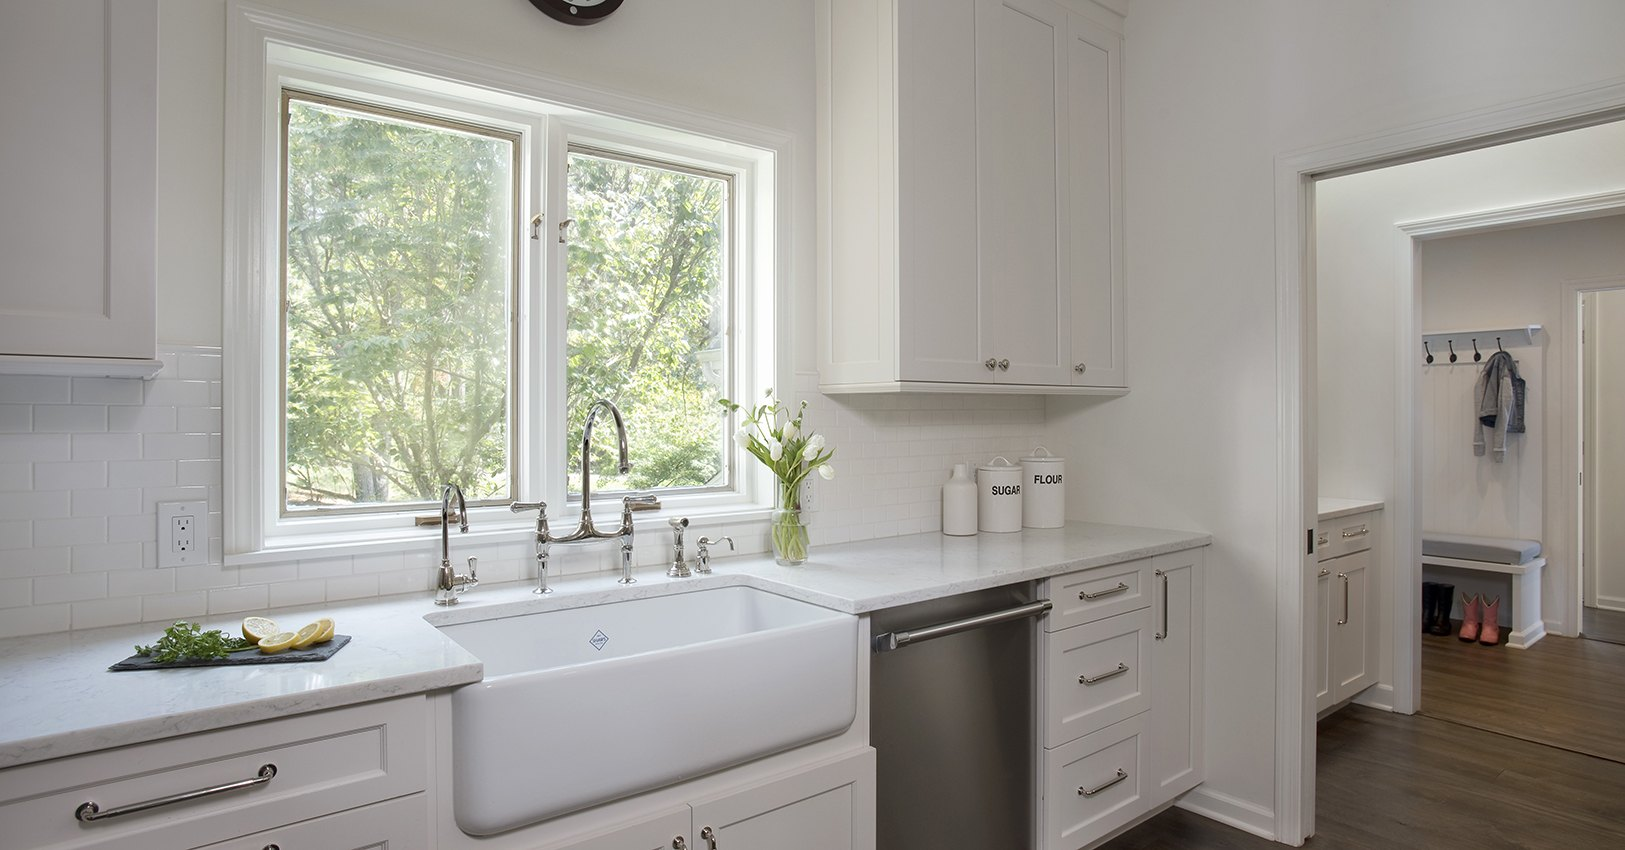 Rohl white farm sink grounds this sink elevation in this kitchen redesign